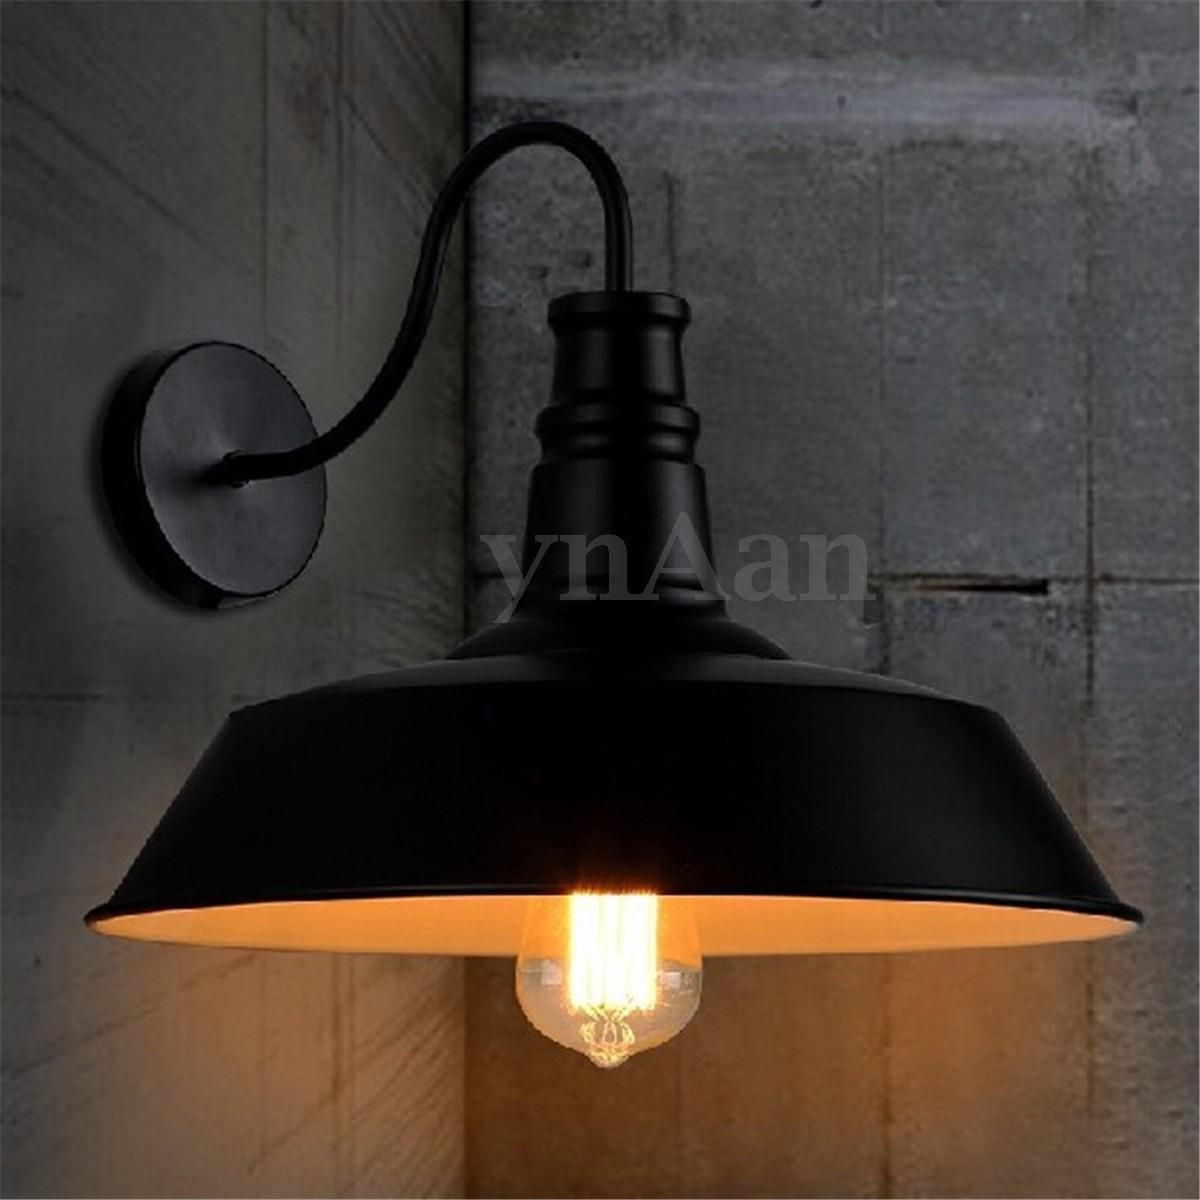 Vintage retro iron industrial loft cafe rustic wall sconce light vintage retro iron industrial loft cafe rustic wall sconce light home bowl lamp amipublicfo Images